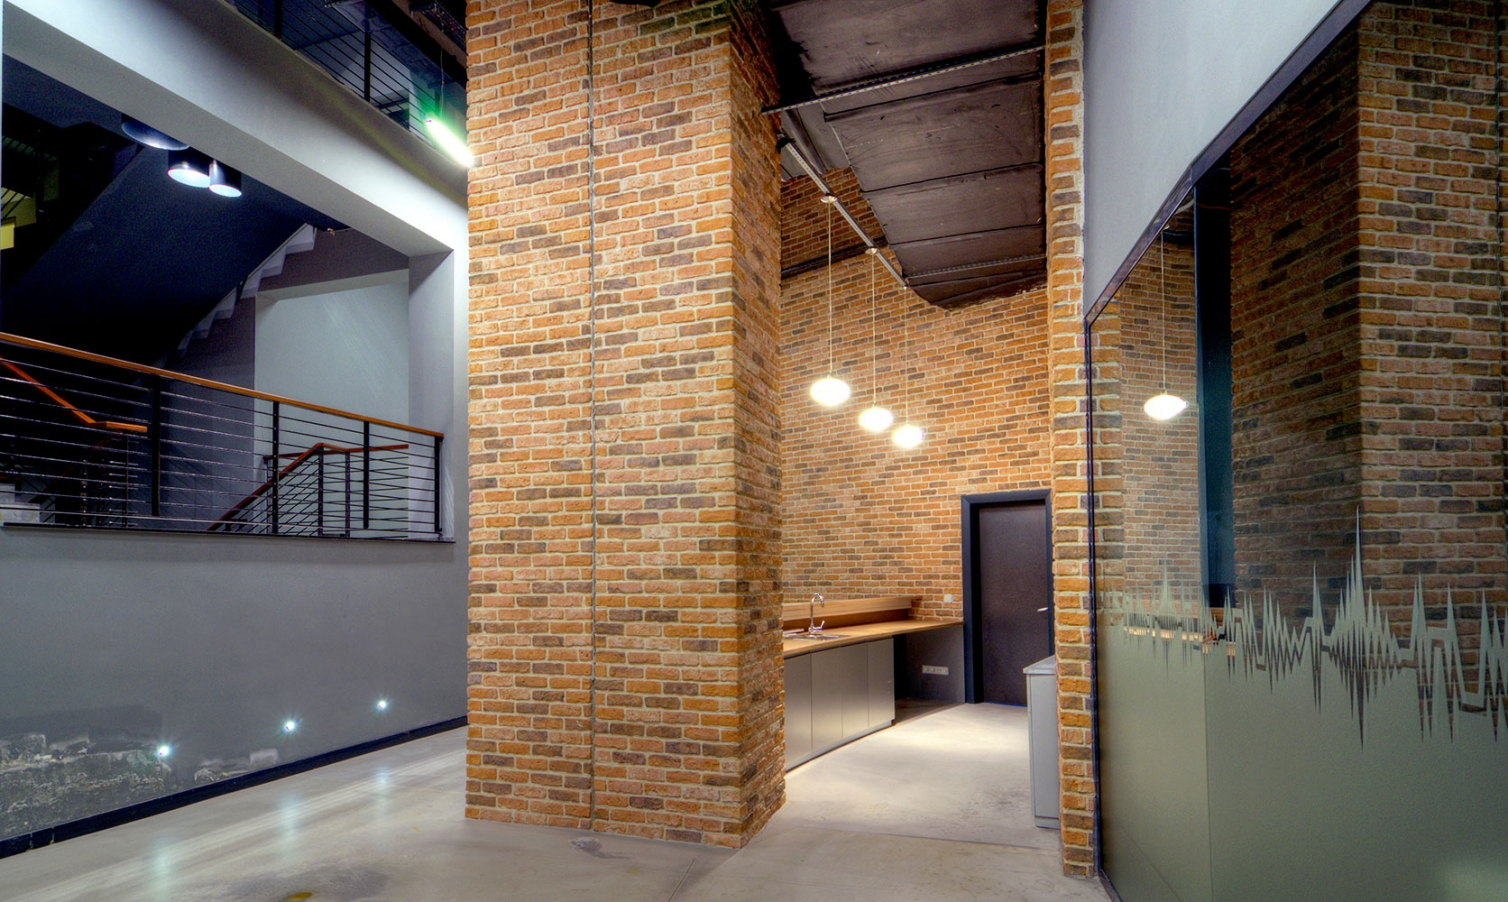 Granulbrick 50 manufactured brick cladding